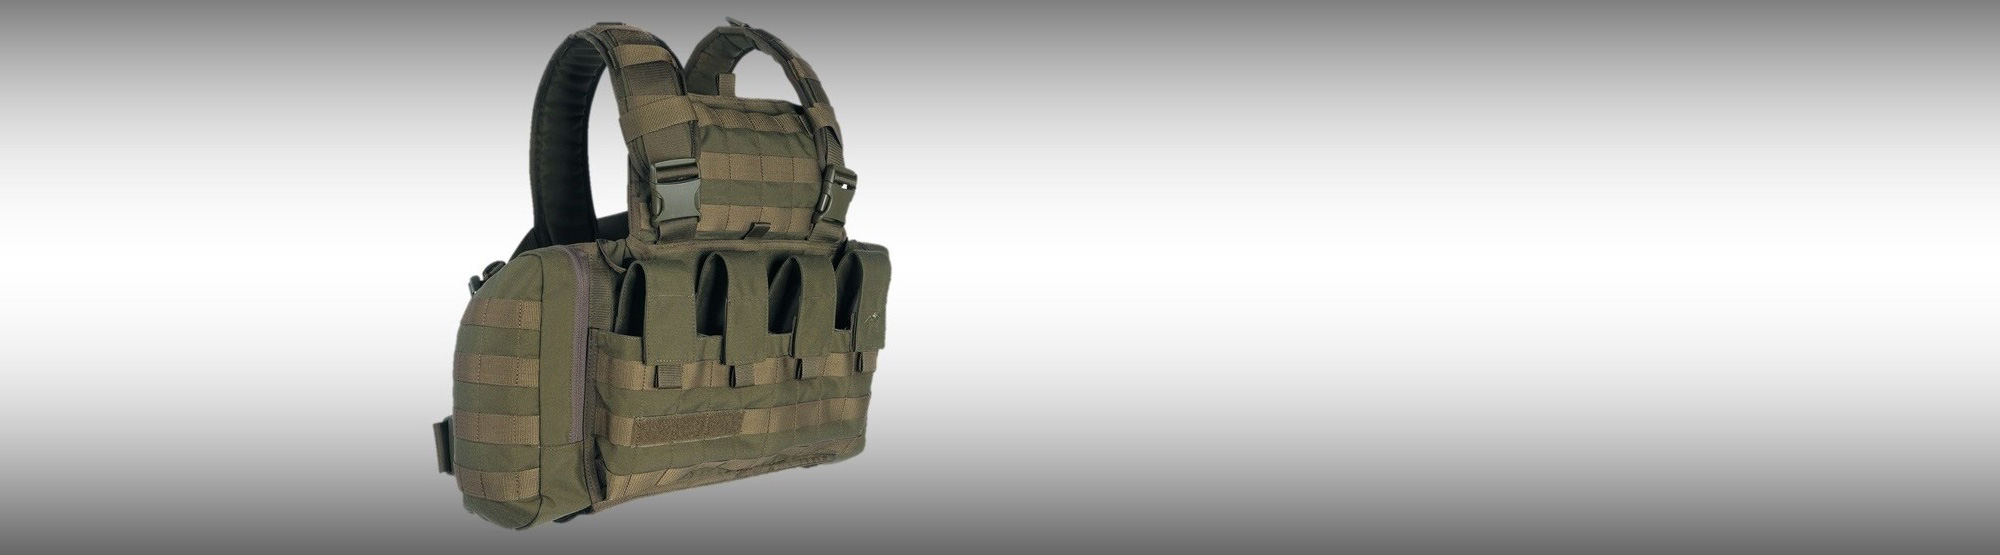 chest-rig-main-slider-2000x555-1